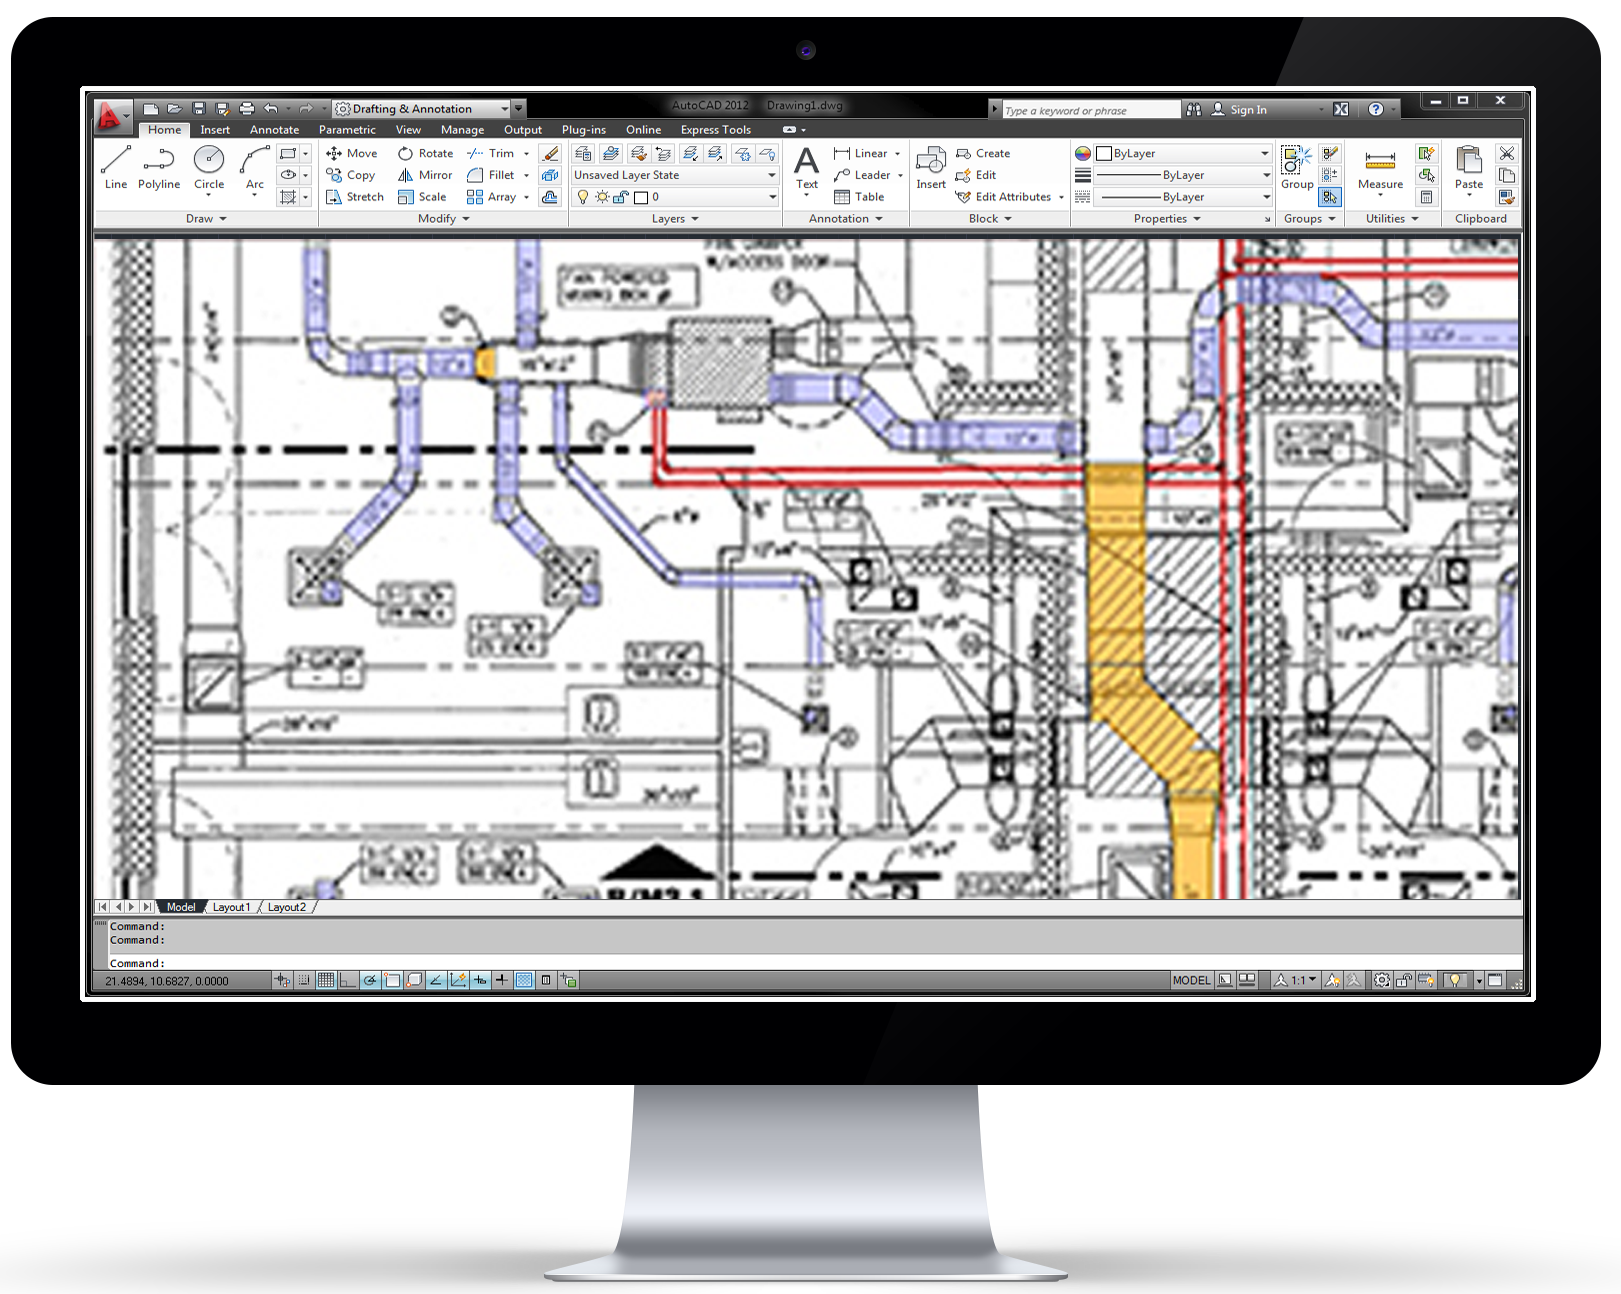 Blakemep Mechanical Electrical Plumbing Design Drawing Hvac Systems Using Autocad Mep System With Autodesk Revit